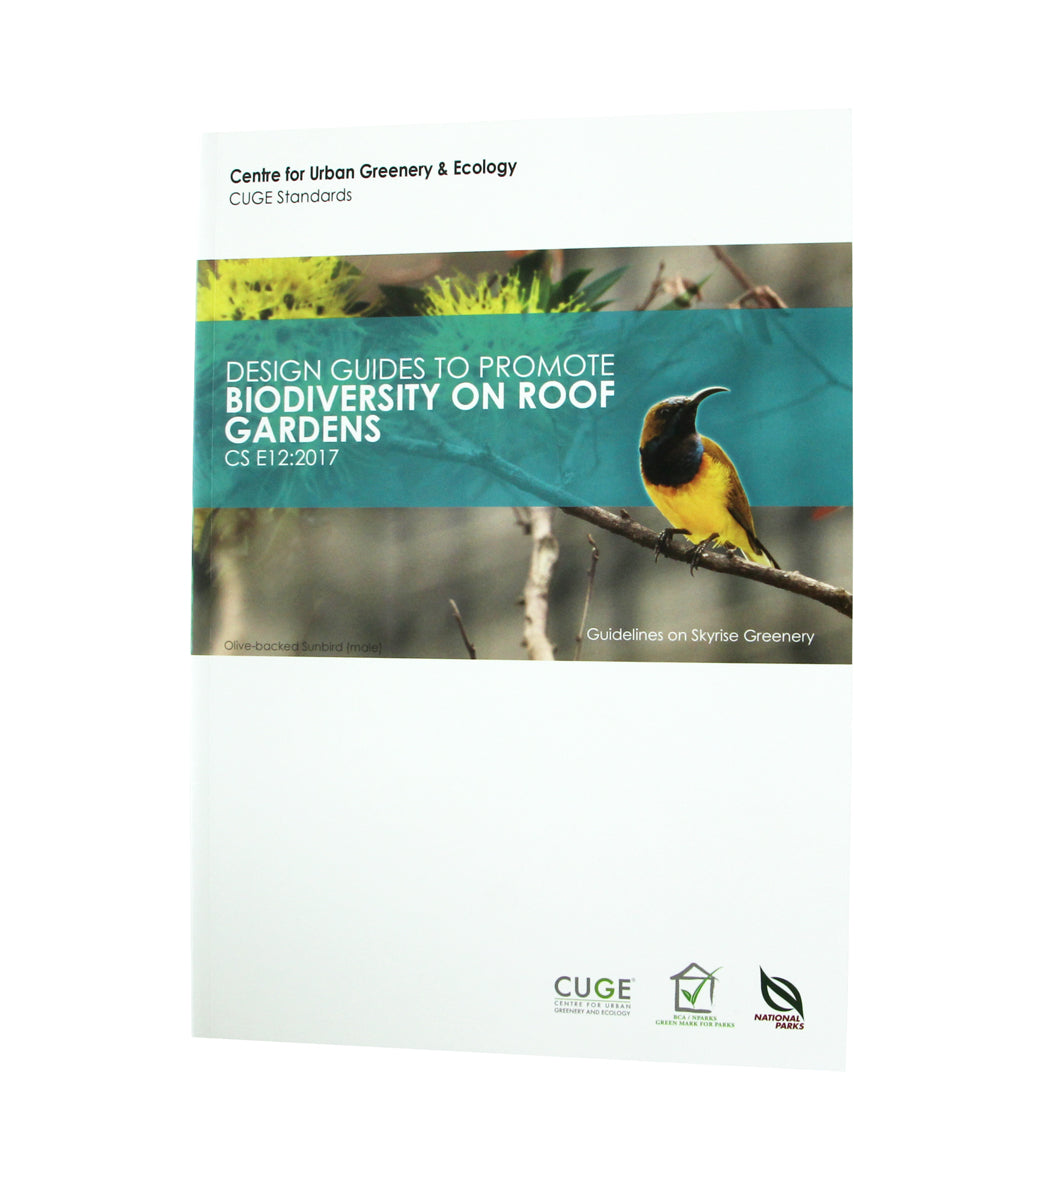 design-guides-to-promote-biodiversity-on-roof-gardens